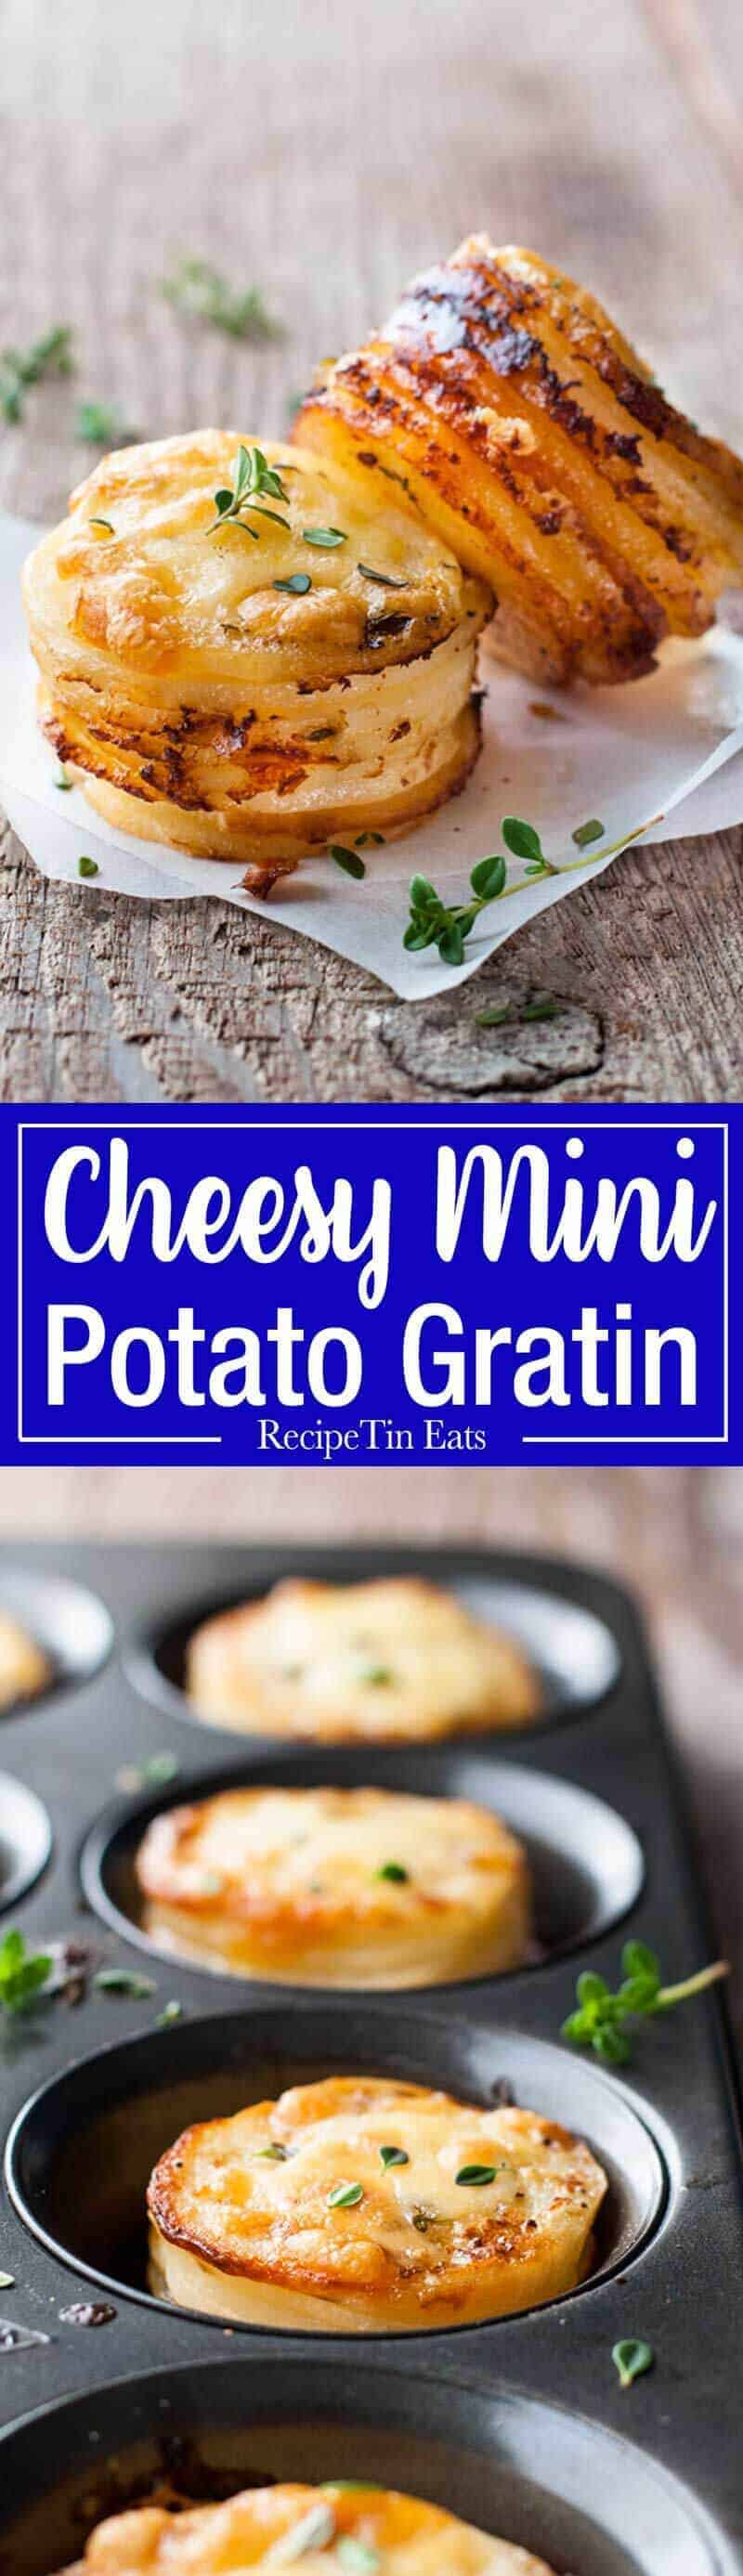 Mini Potato Gratin Stacks - great party food, breakfast with eggs or as a side for a fancy dinner. Made in a muffin tin! recipetineats.com